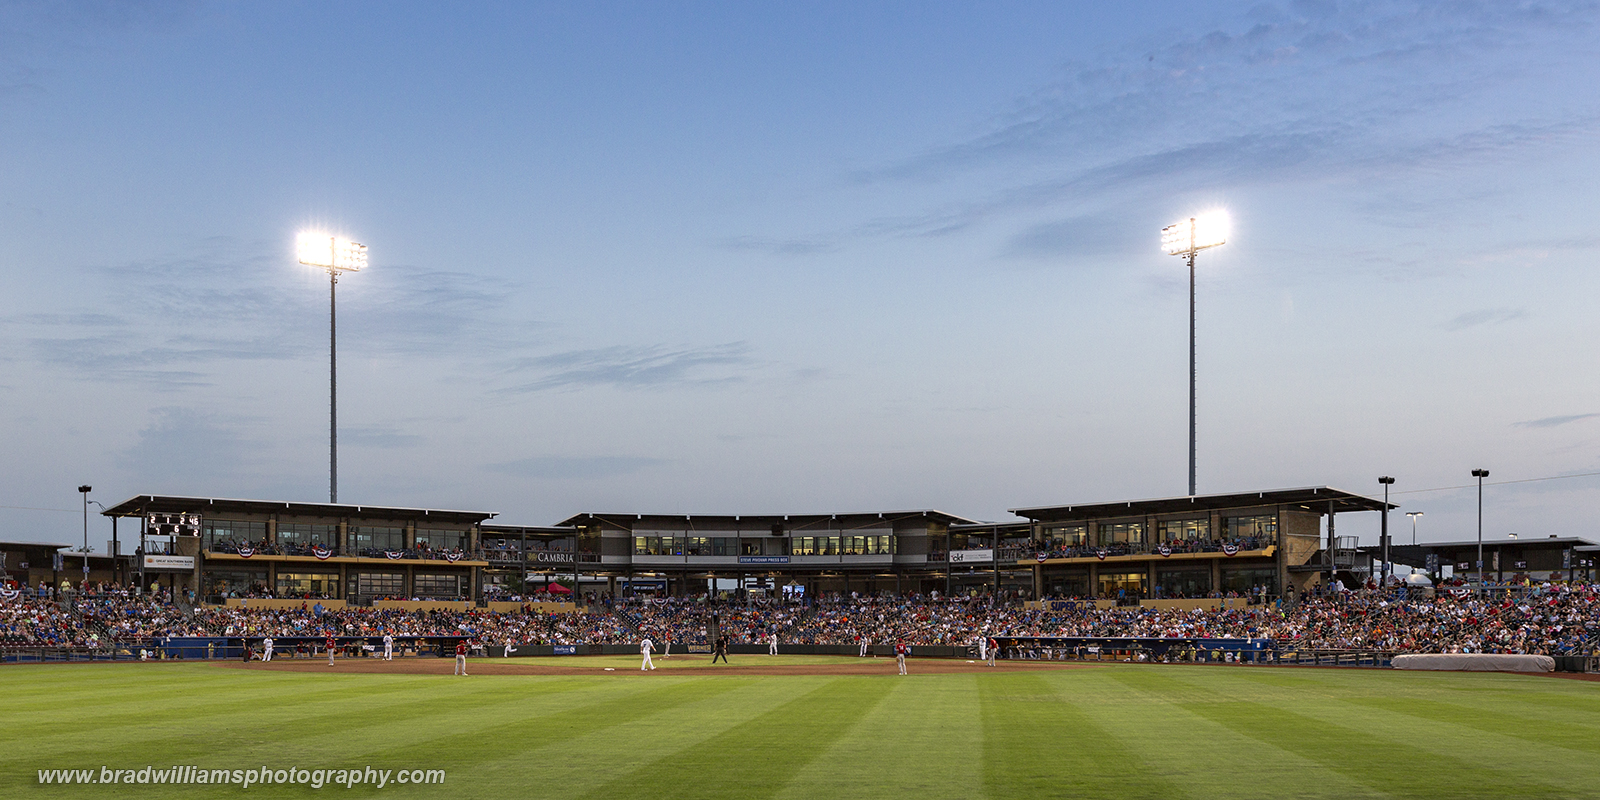 Omaha Storm Chasers, Fourth of July, Werner Park, Papillion, Nebraska, baseball, fireworks, photo